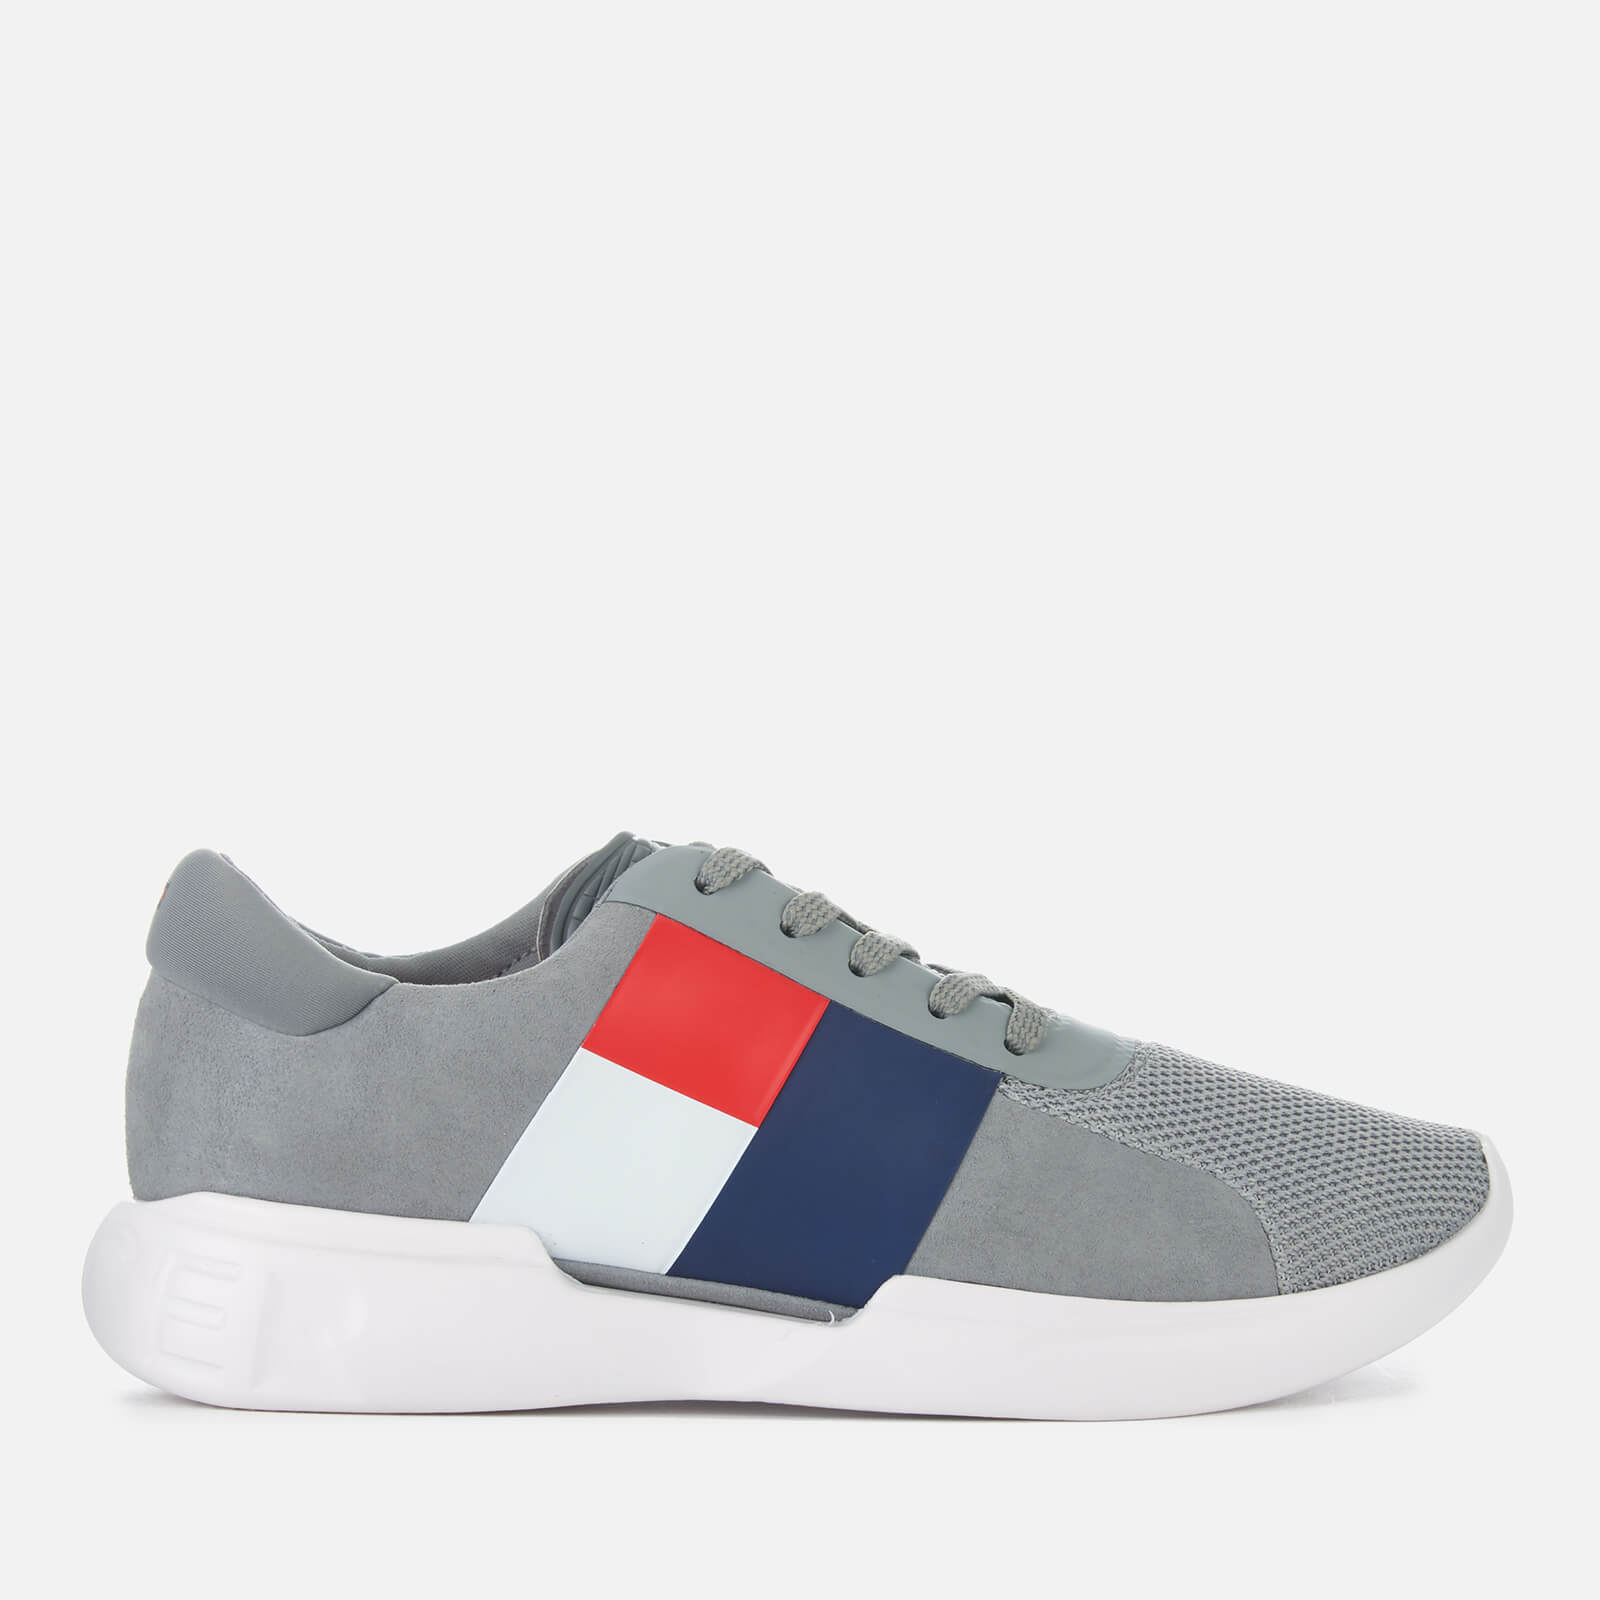 factory outlets new design cheaper Tommy Hilfiger Men's Lightweight Runner Style Trainers - Light ...